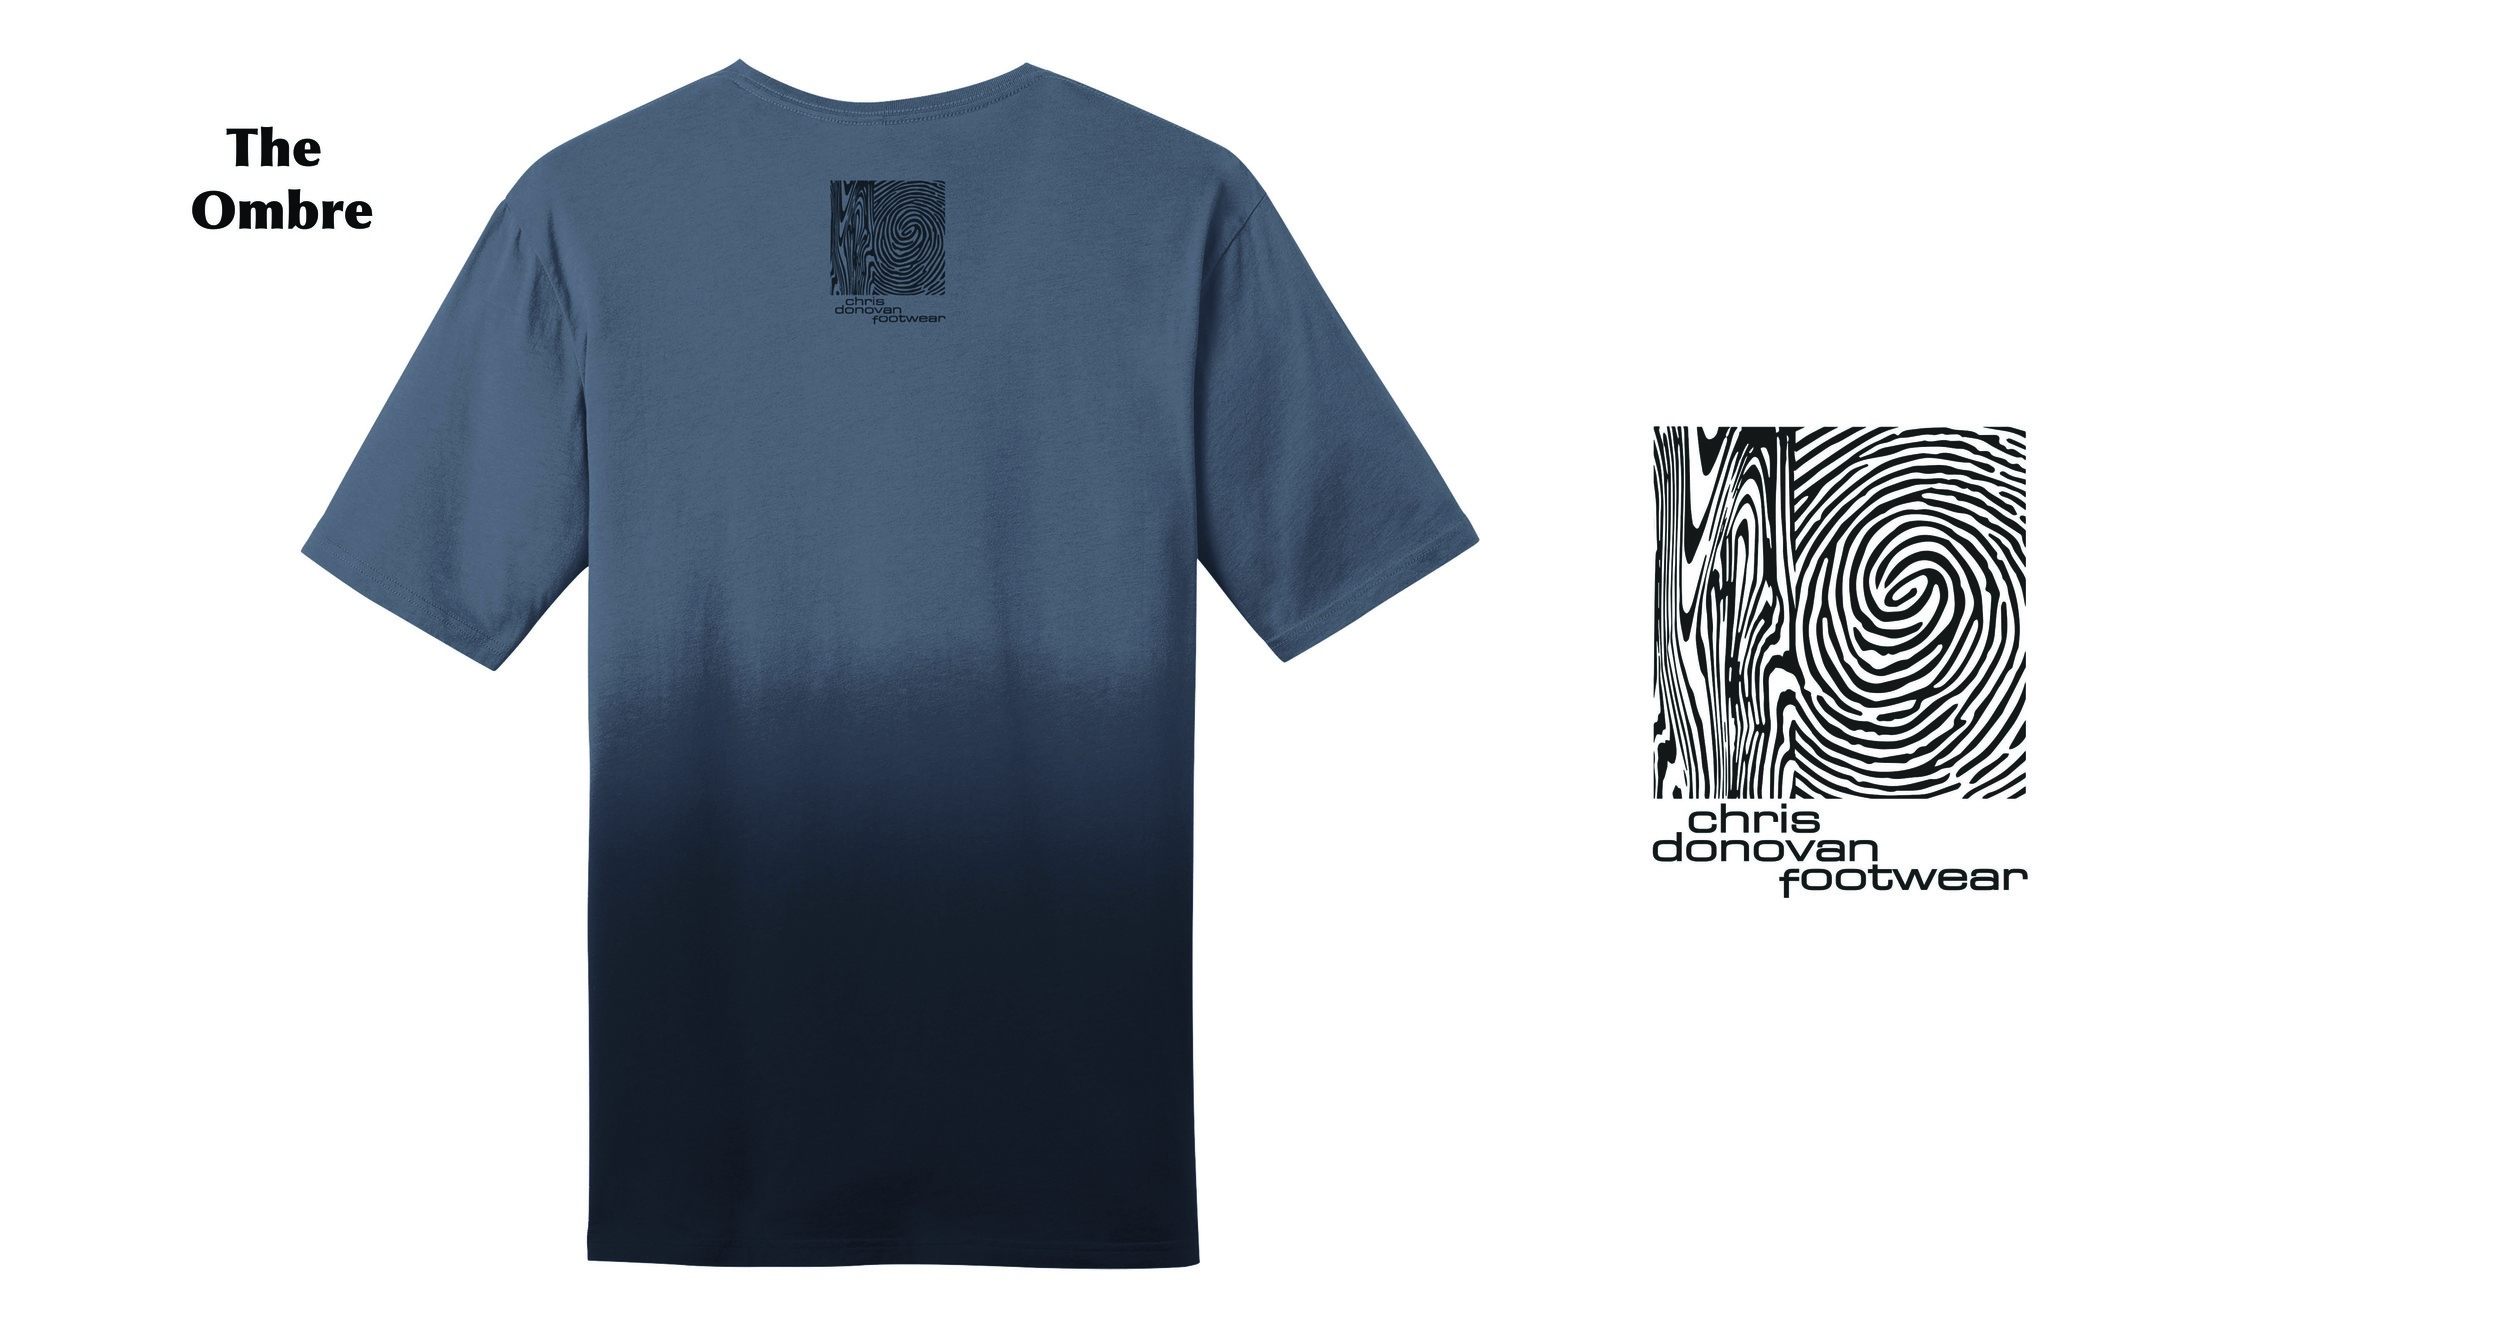 T-shirts with the collection logo